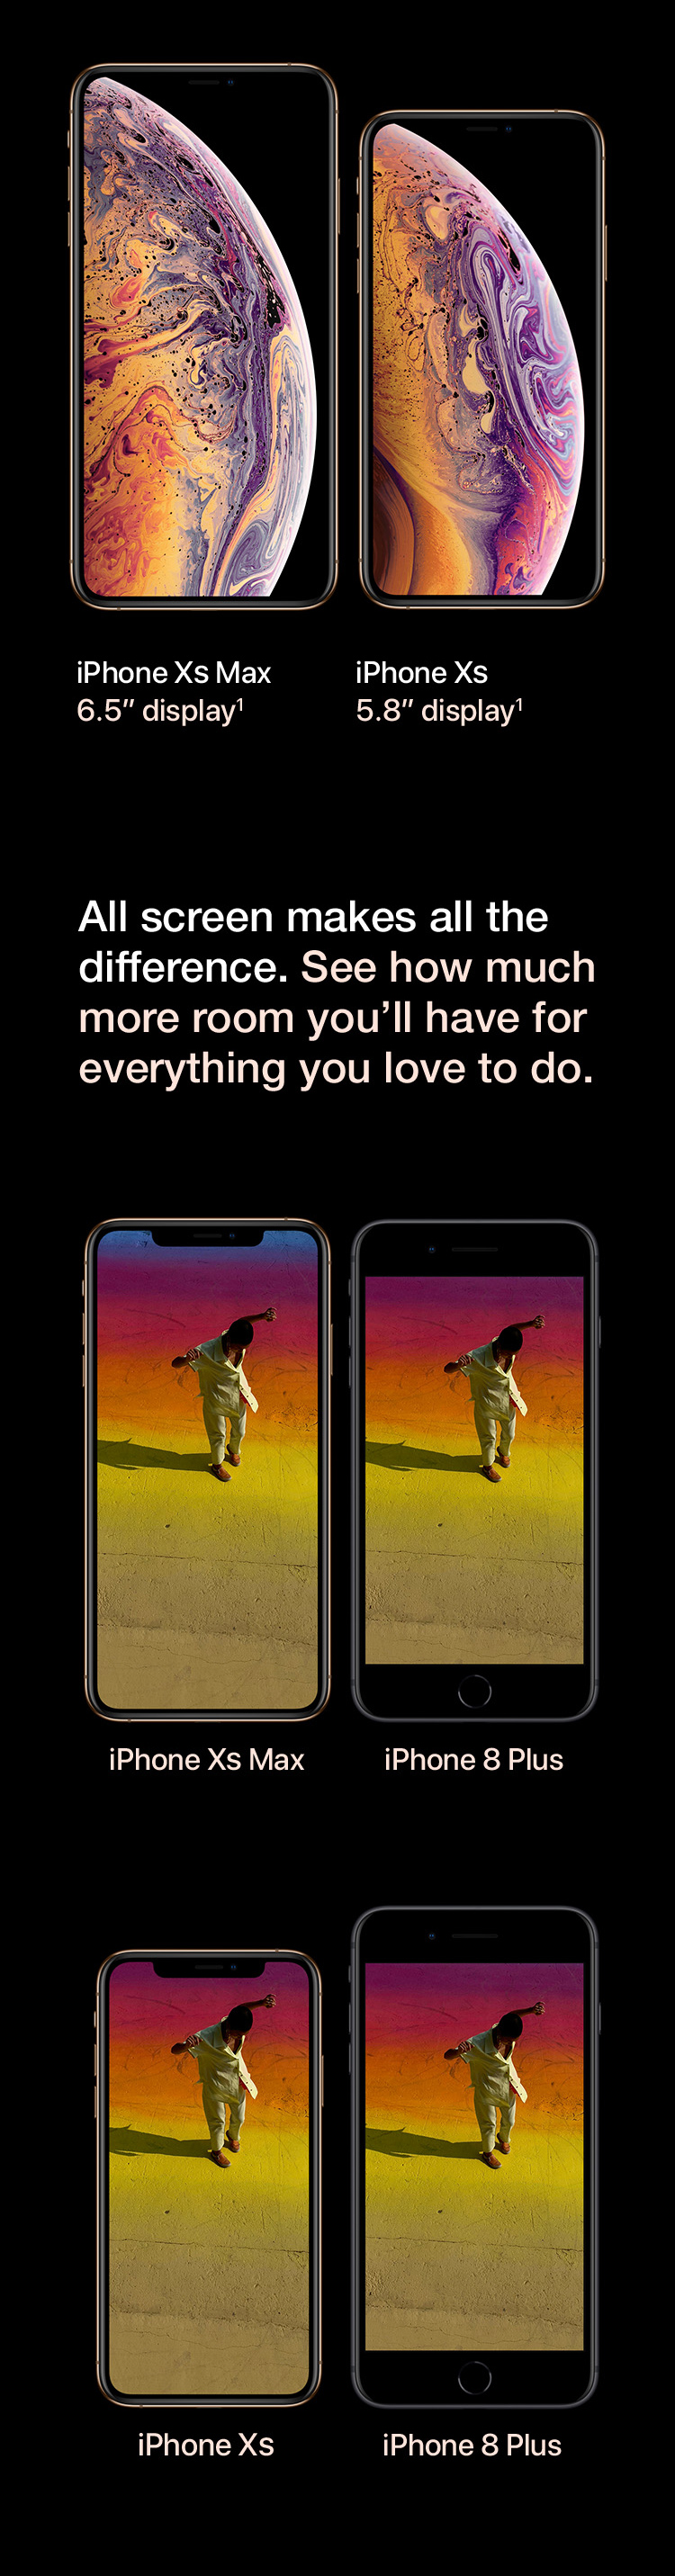 iPhone XS Max 6.5 display.iPhone XS Max 6.5 iphone xs 5.8inch all screen makes the difference. see how much more room you'll have for everything you love to do.max 8 plus.iphone xs